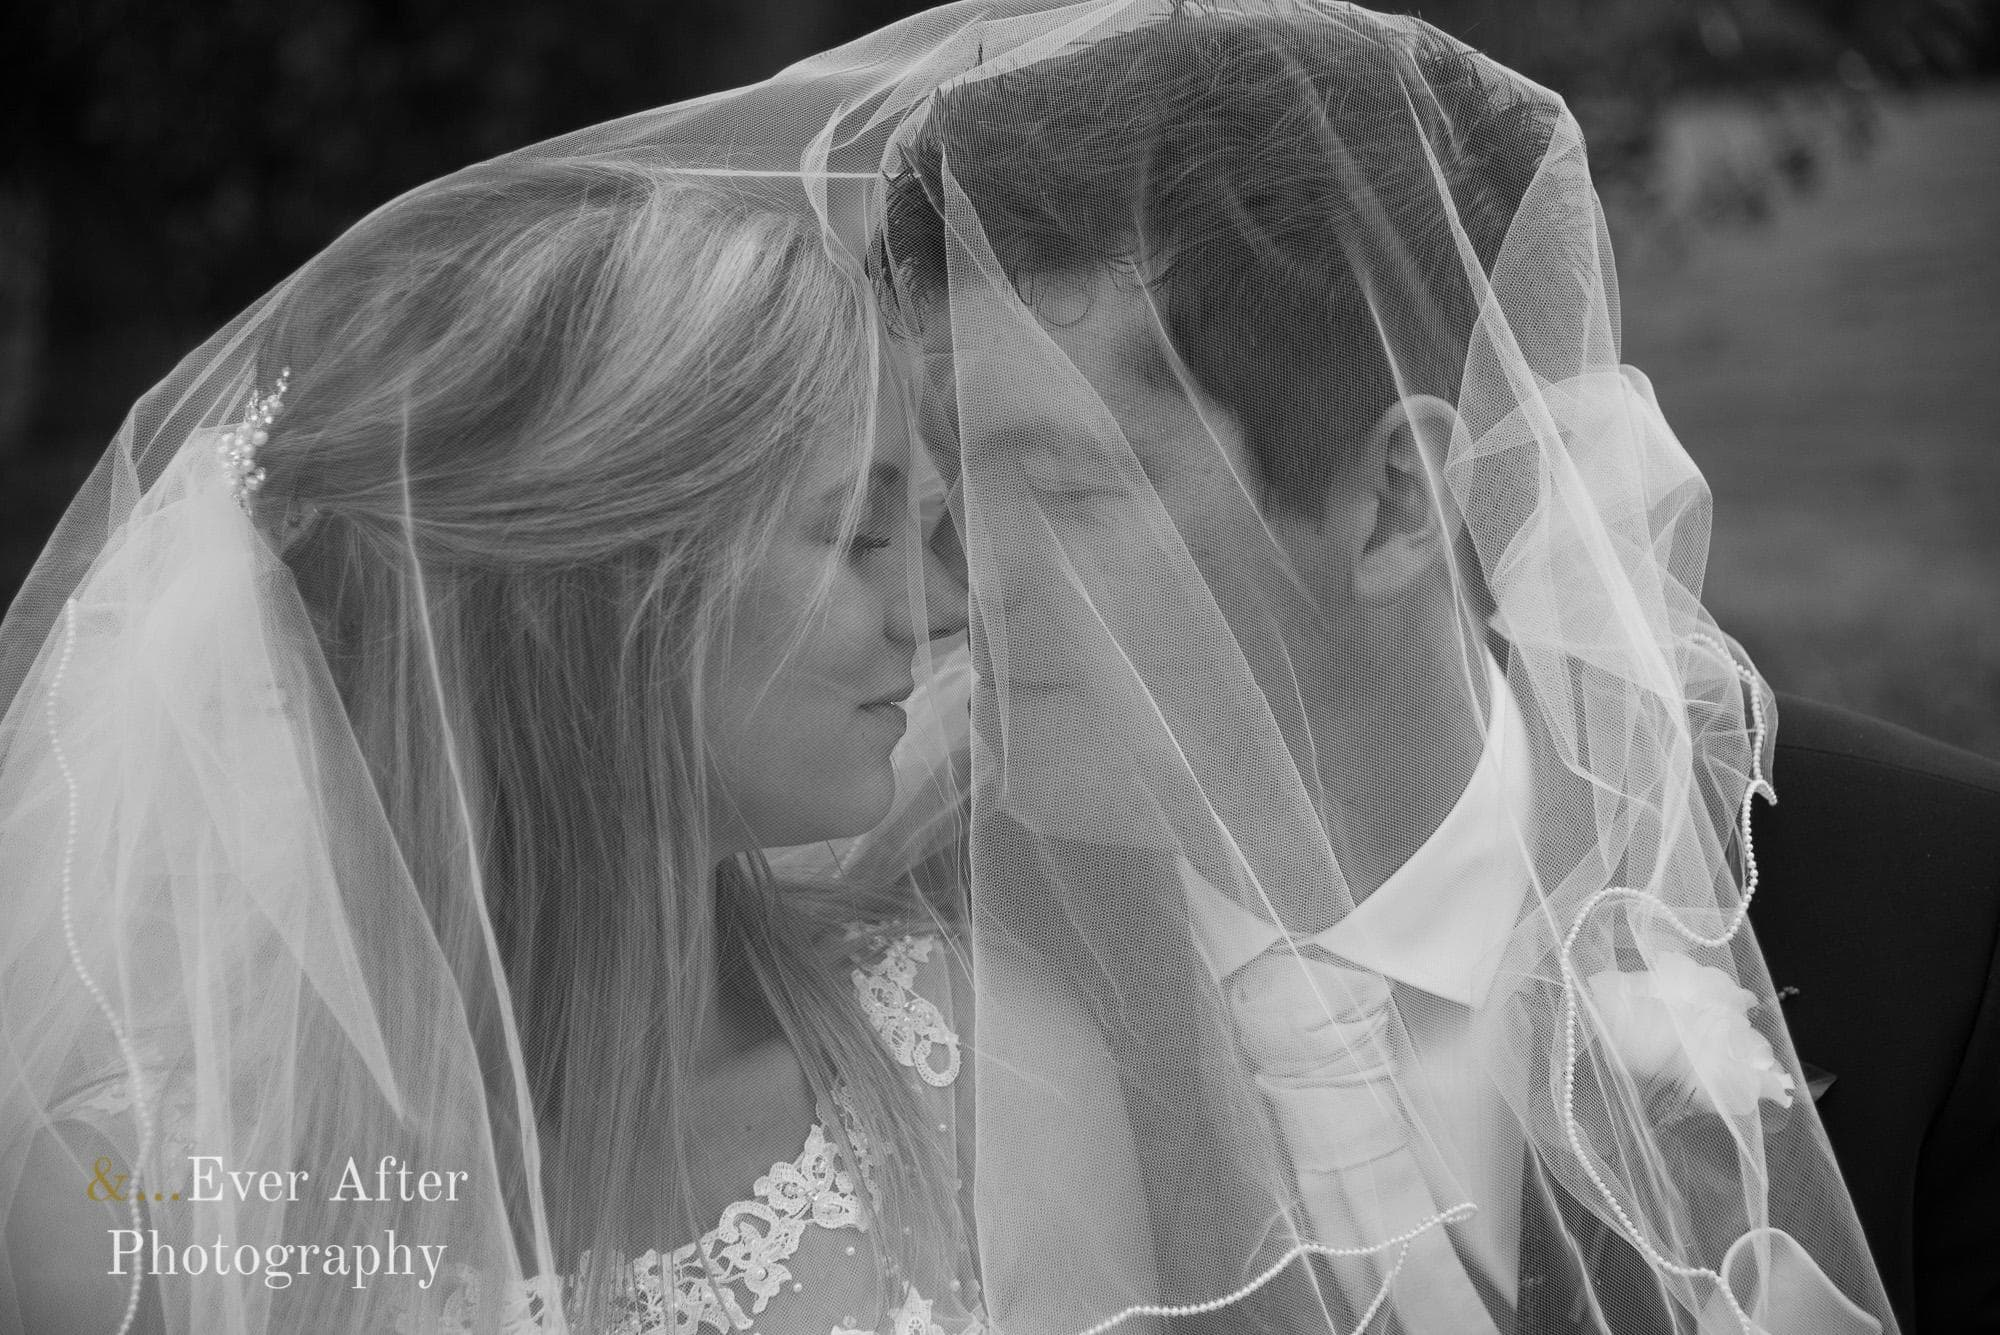 bride, groom, veil, love, married, photograph